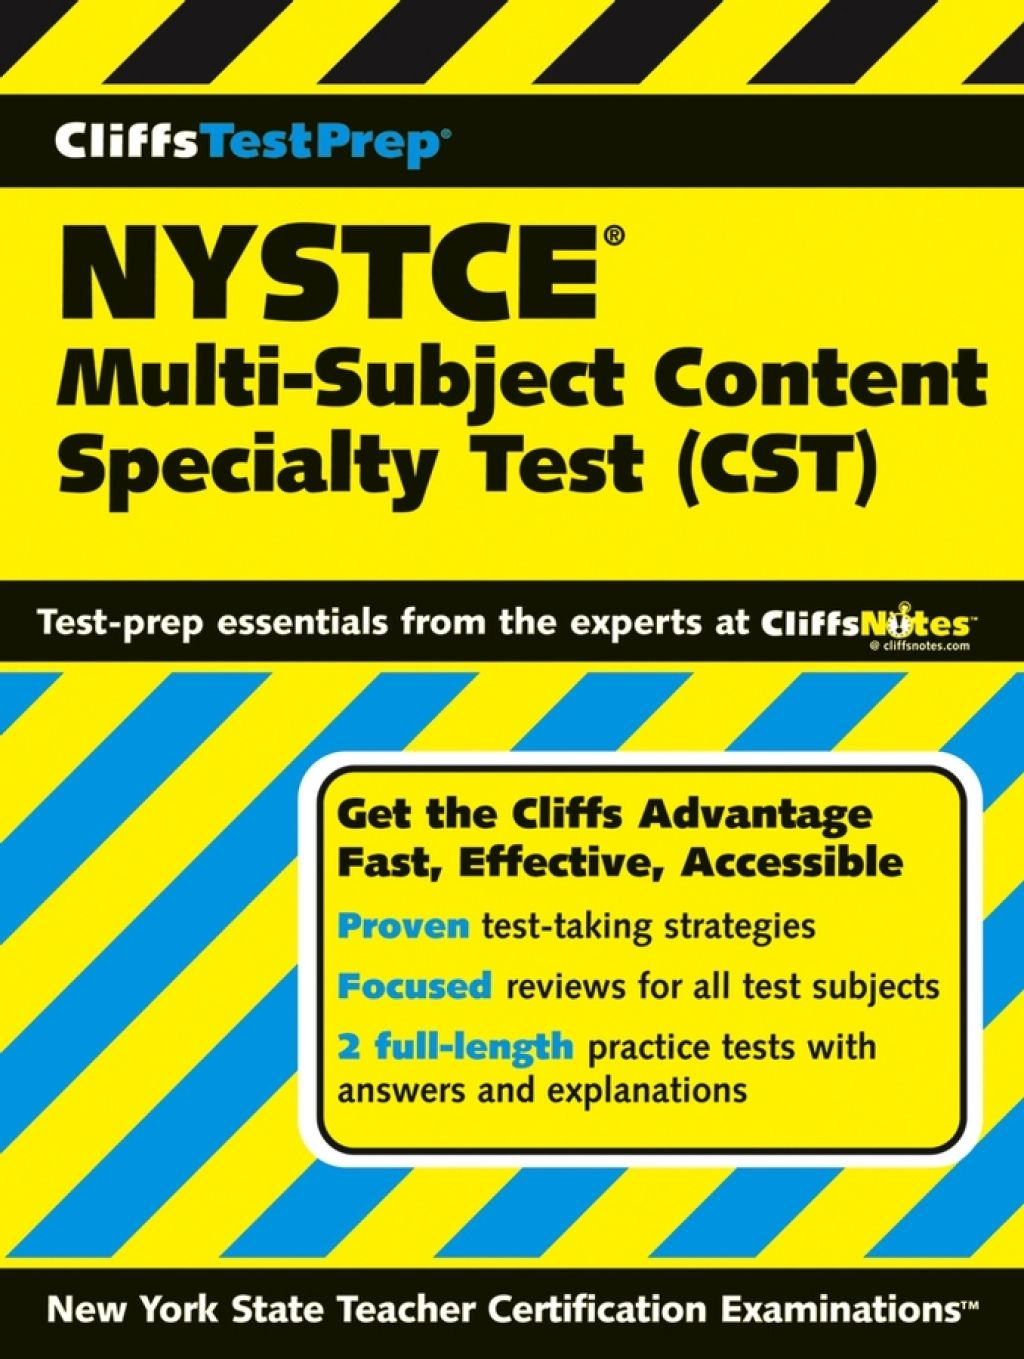 CliffsTestPrep NYSTCE: Multi-Subject Content Specialty Test (CST